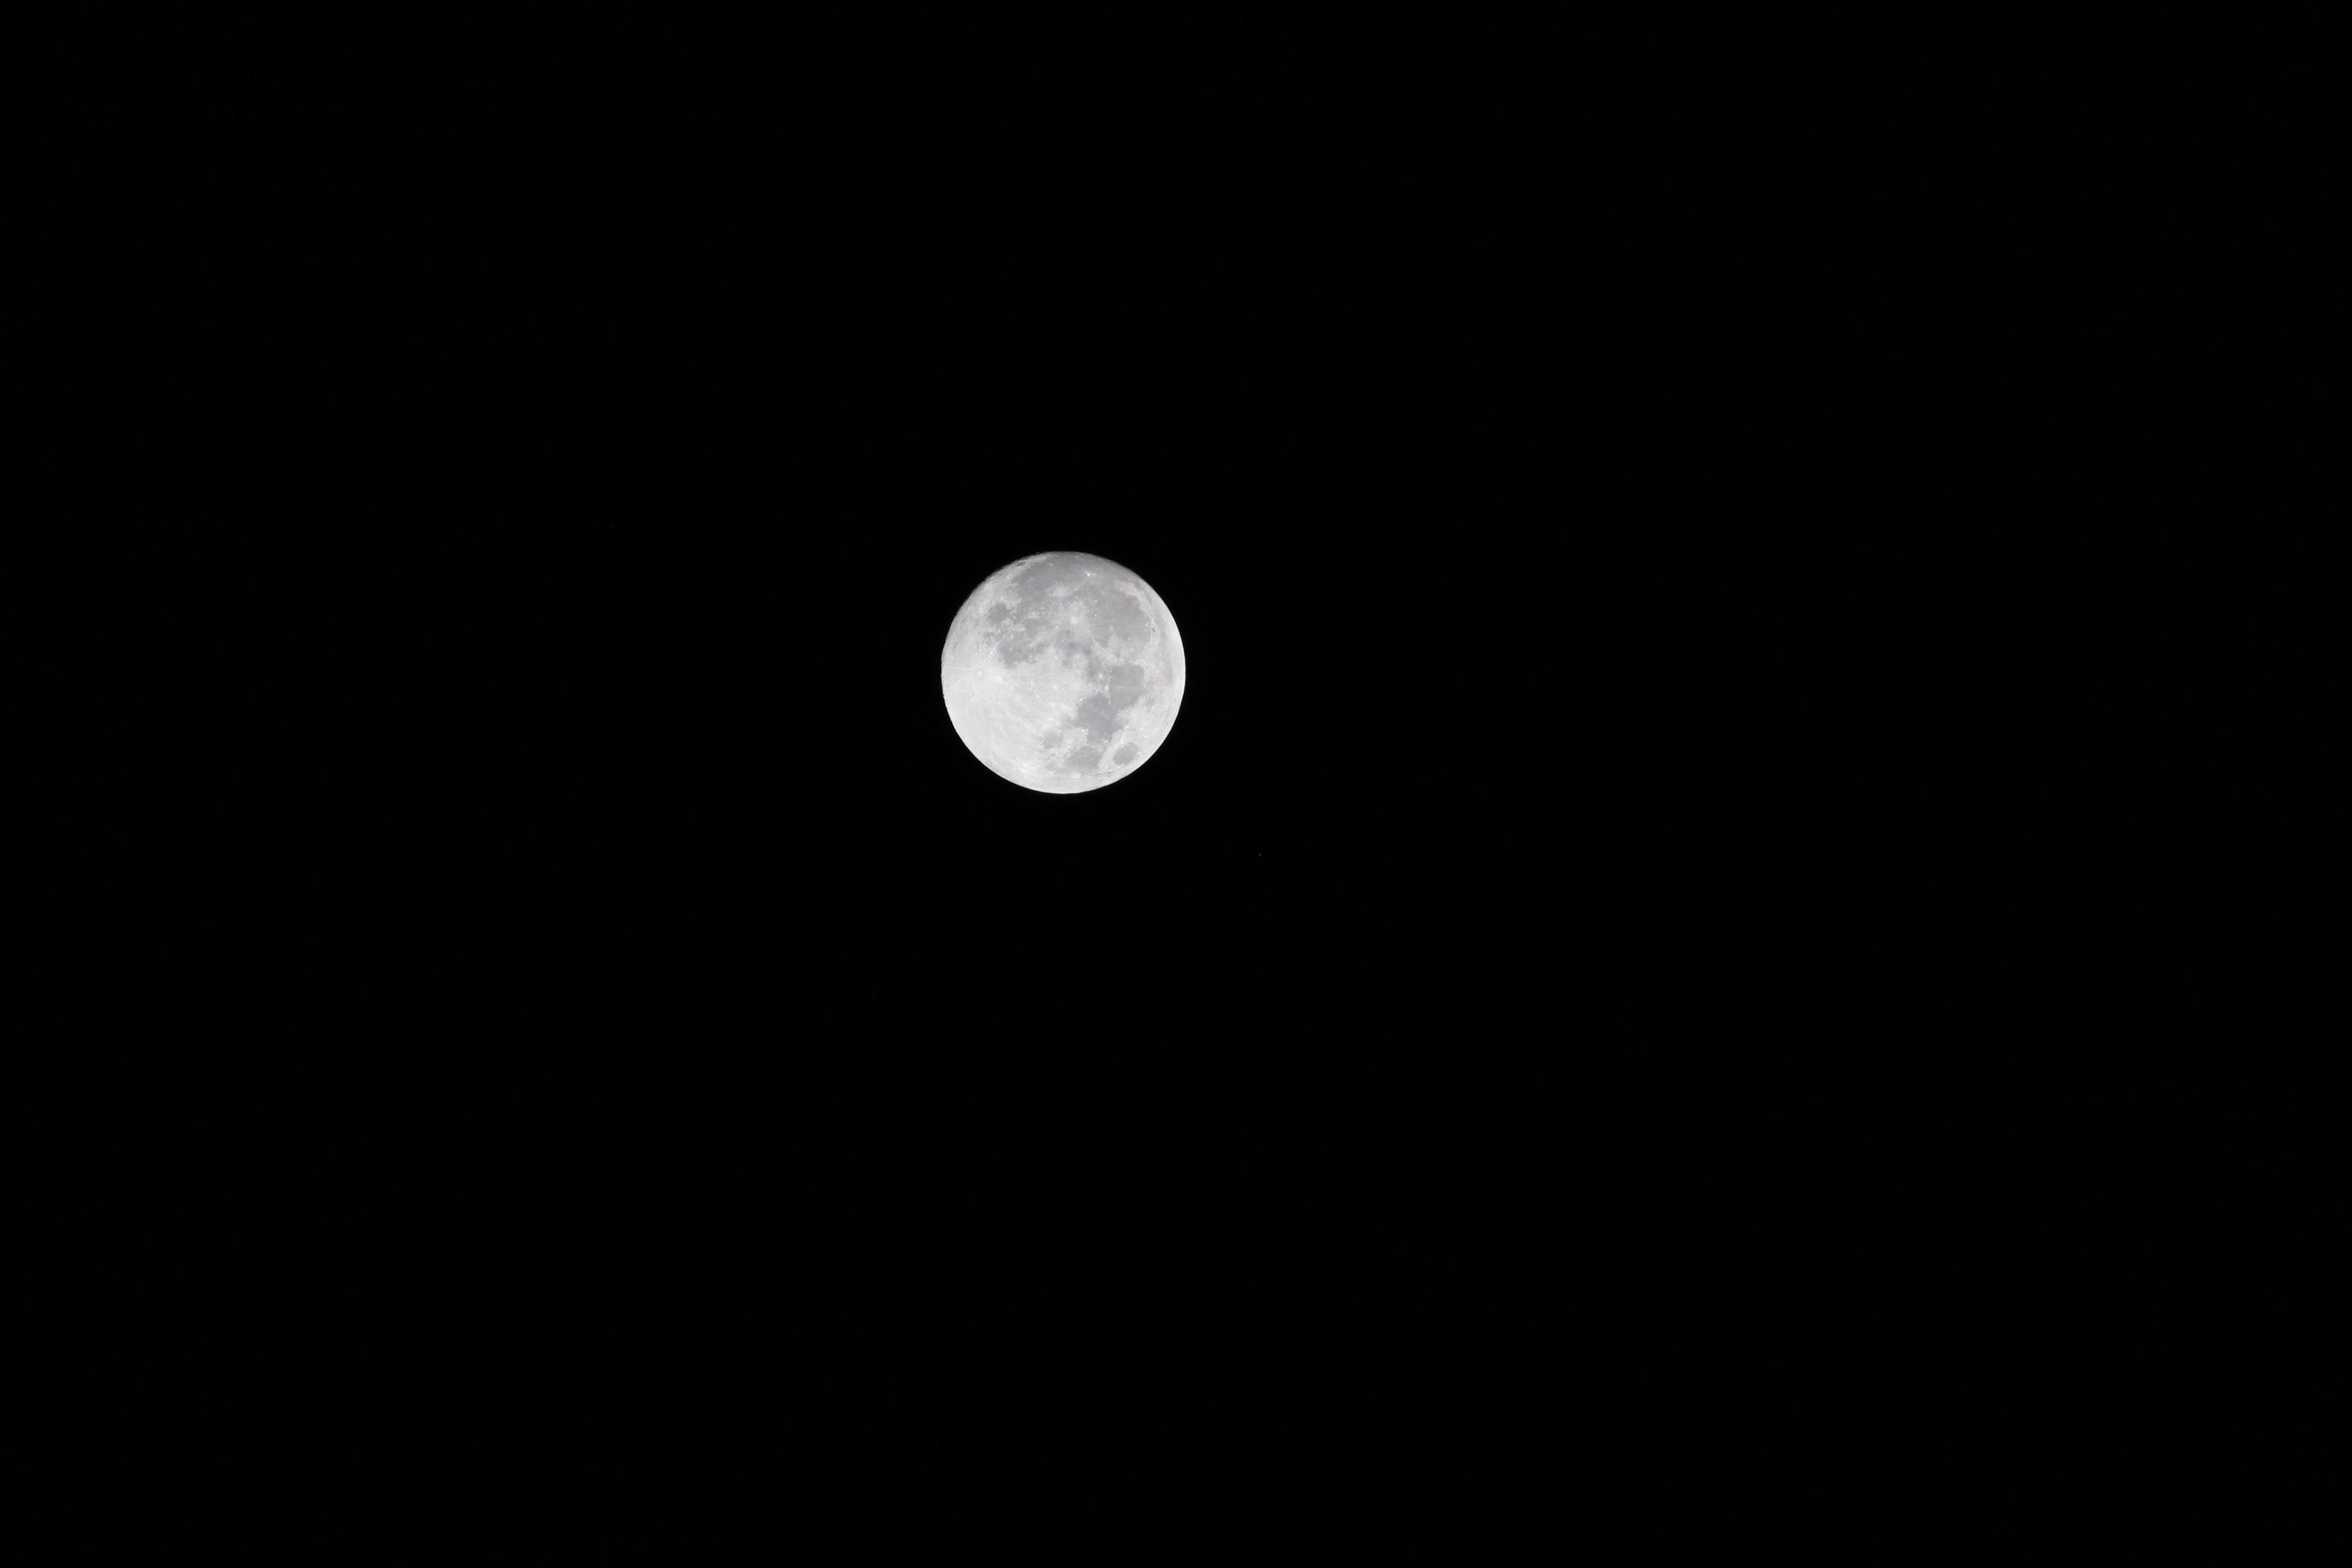 gray full moon at nighttime